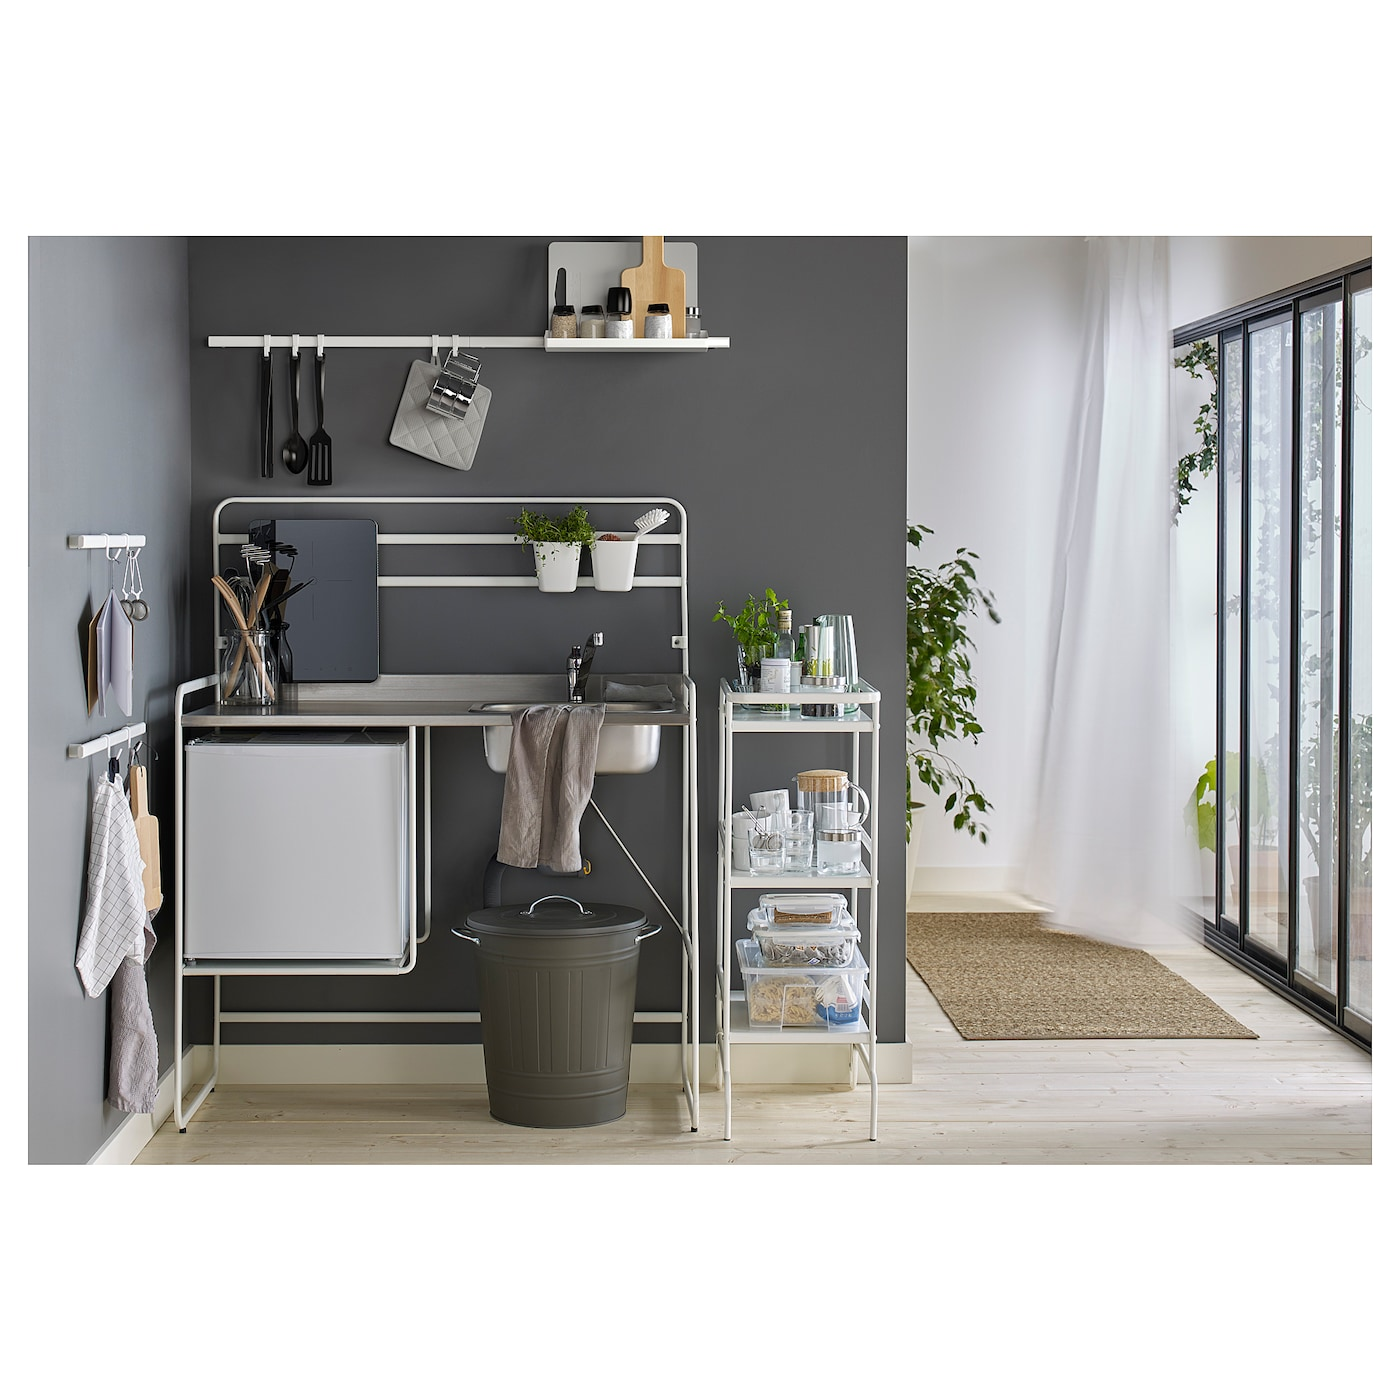 IKEA SUNNERSTA shelf Gives you extra storage in your kitchen.